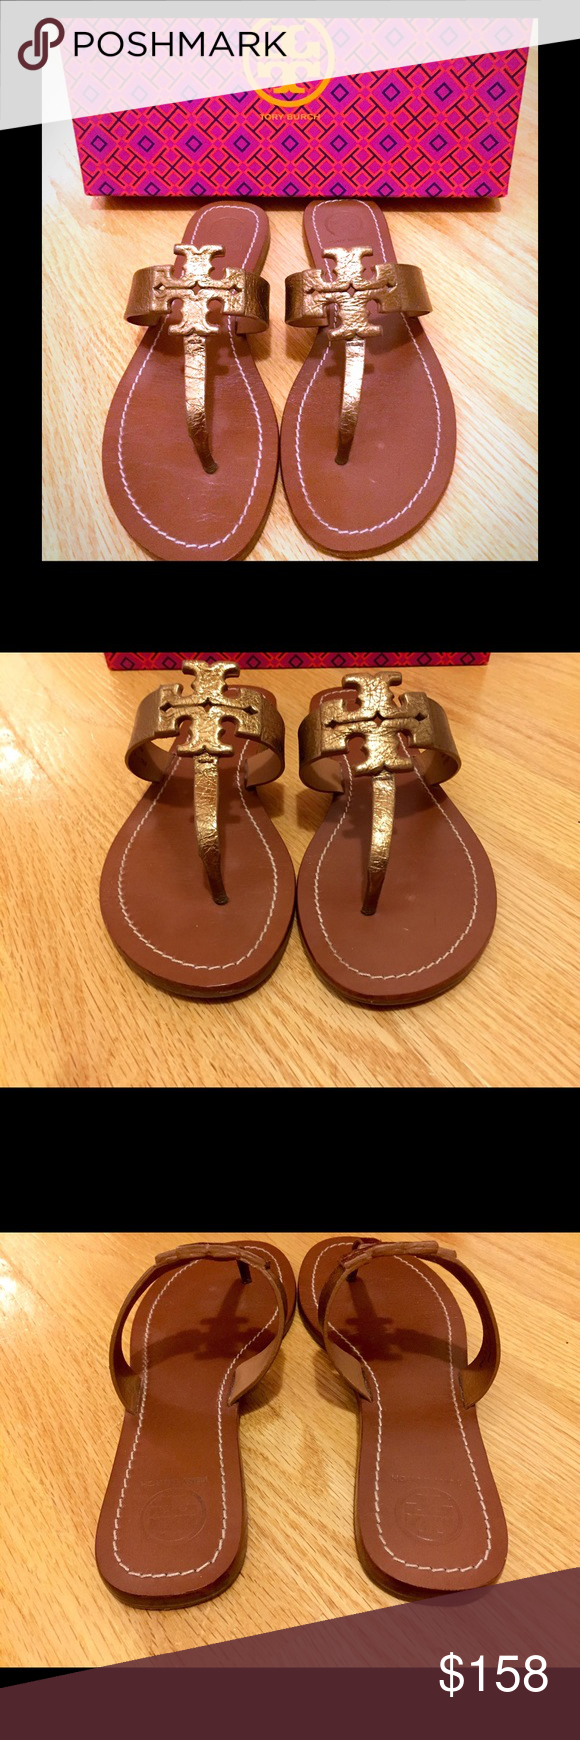 Tory Burch Moore Sandals in Bronze Leather Gently pre-loved. These sandals are a gorgeous bronze color. Excellent condition! Box and dust bag included with purchase. REASONABLE offers welcome. Thank you for looking!  Tory Burch Shoes Sandals